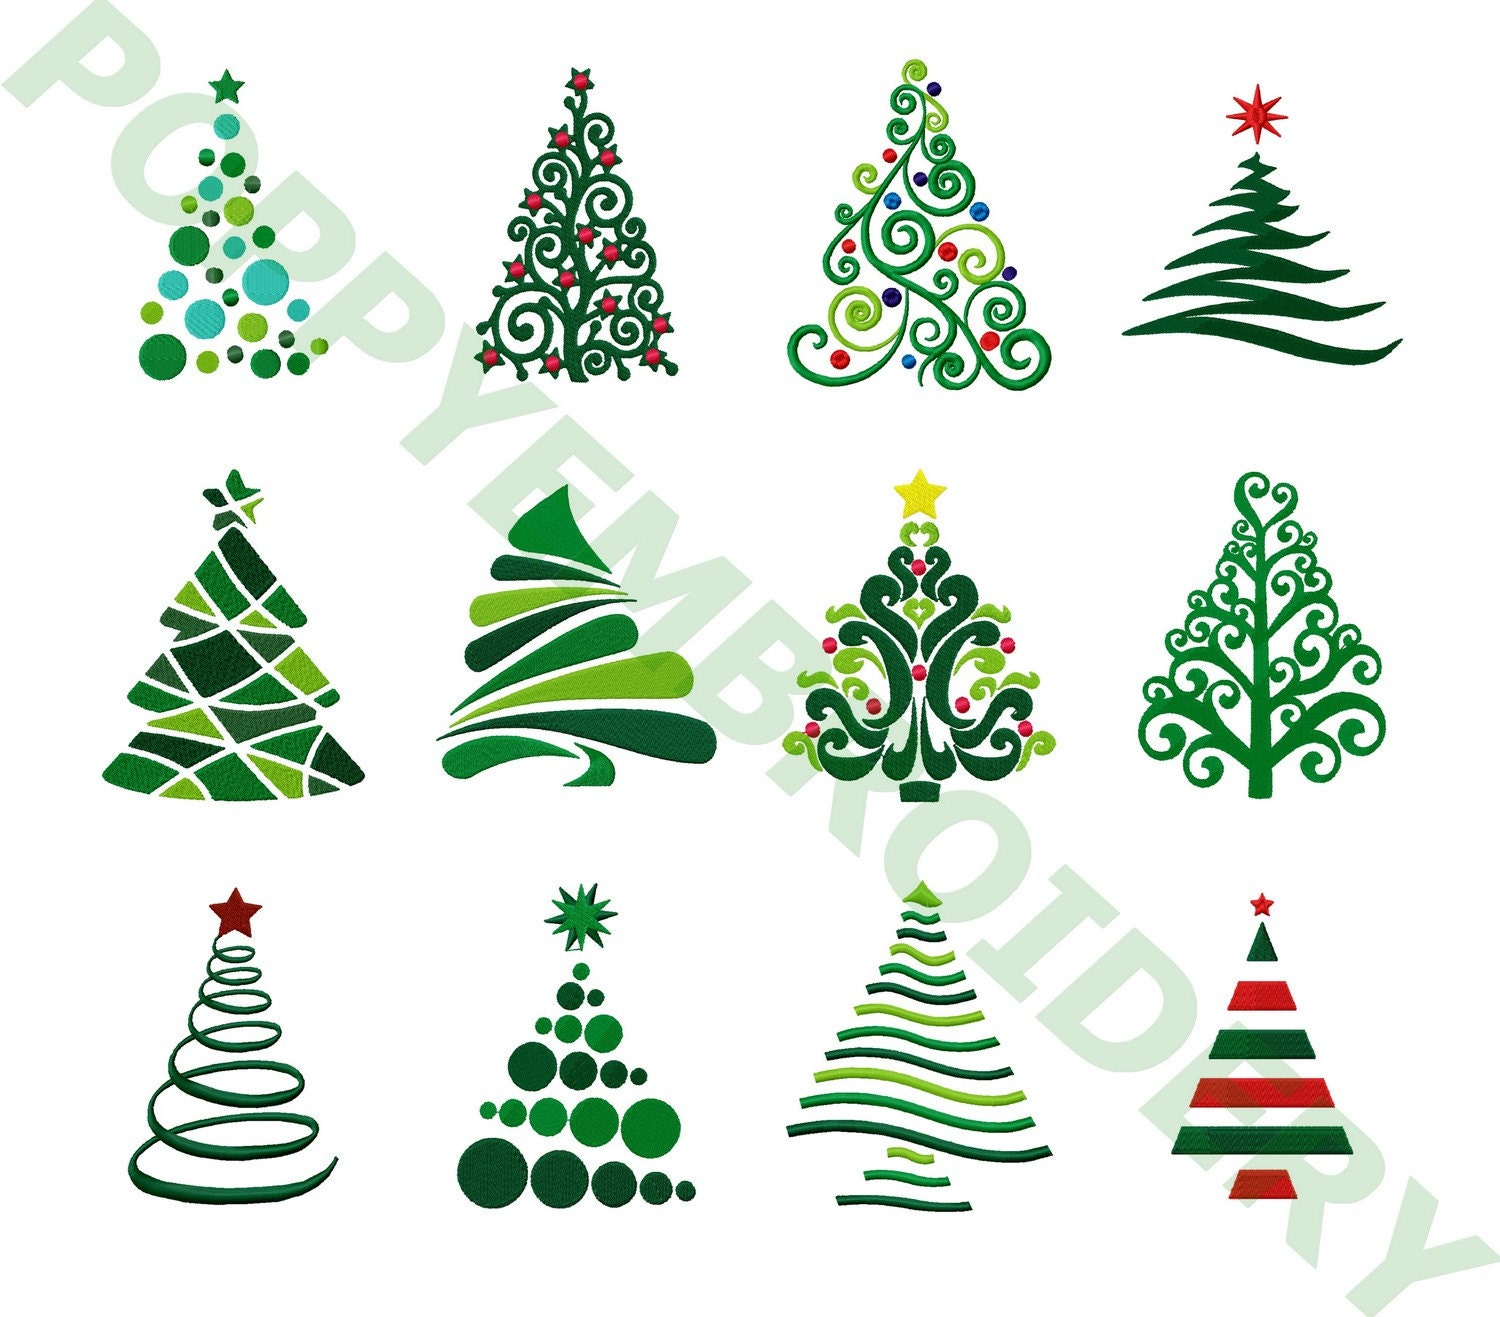 CHRISTMAS Tree Designs For Embroidery Machine / Noel Motifs